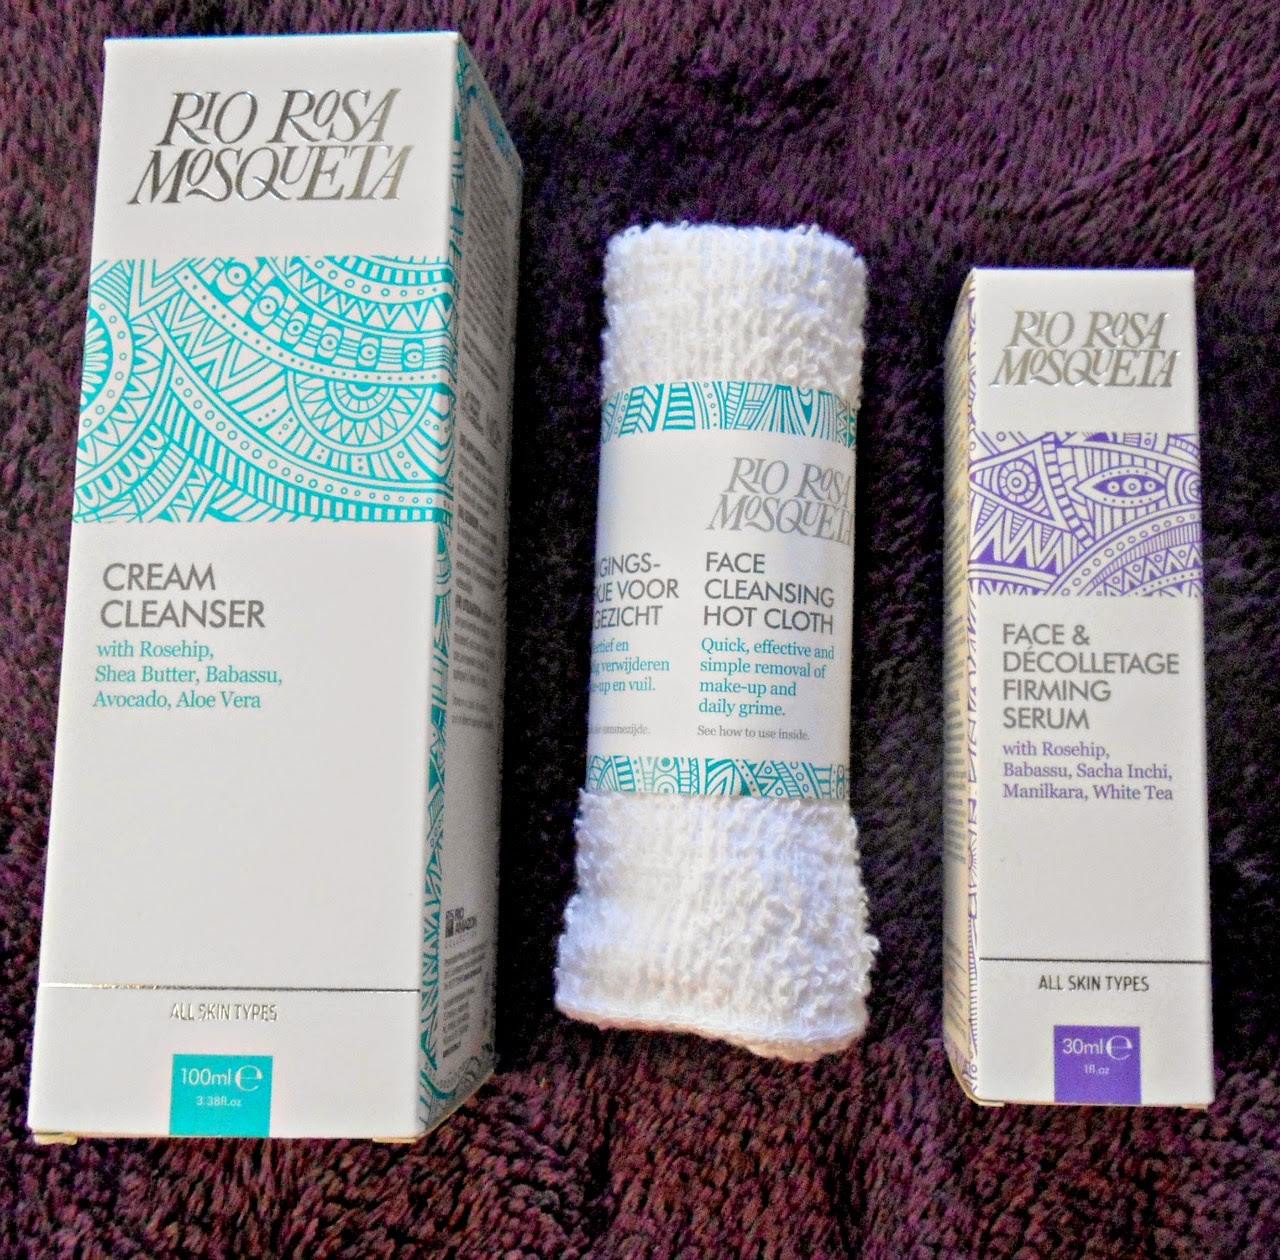 Review Rio Rosa Mosqueta Cleanser &  Firming Serum